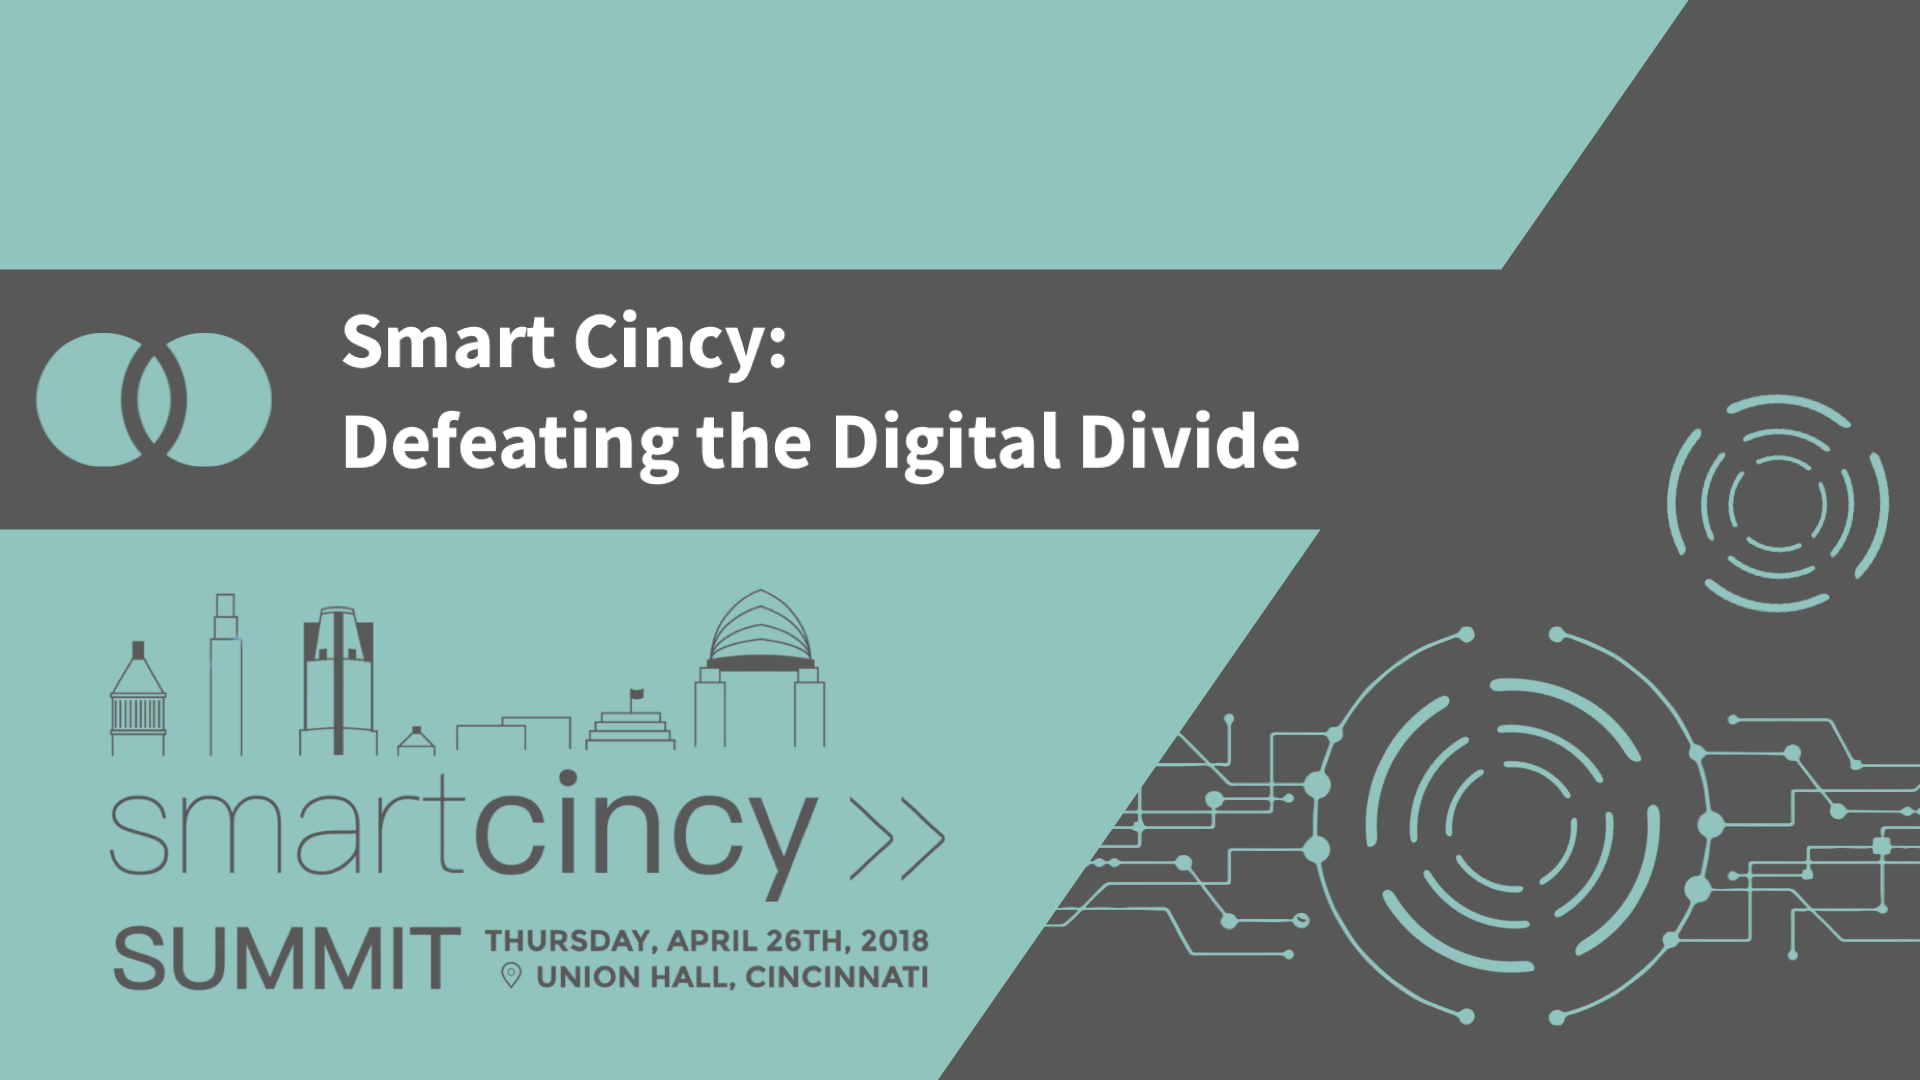 2.  Smart Cincy: Defeating the Digital Divide - Talking points include - increasing access to connectivity for students, adults, businesses and neighborhoods